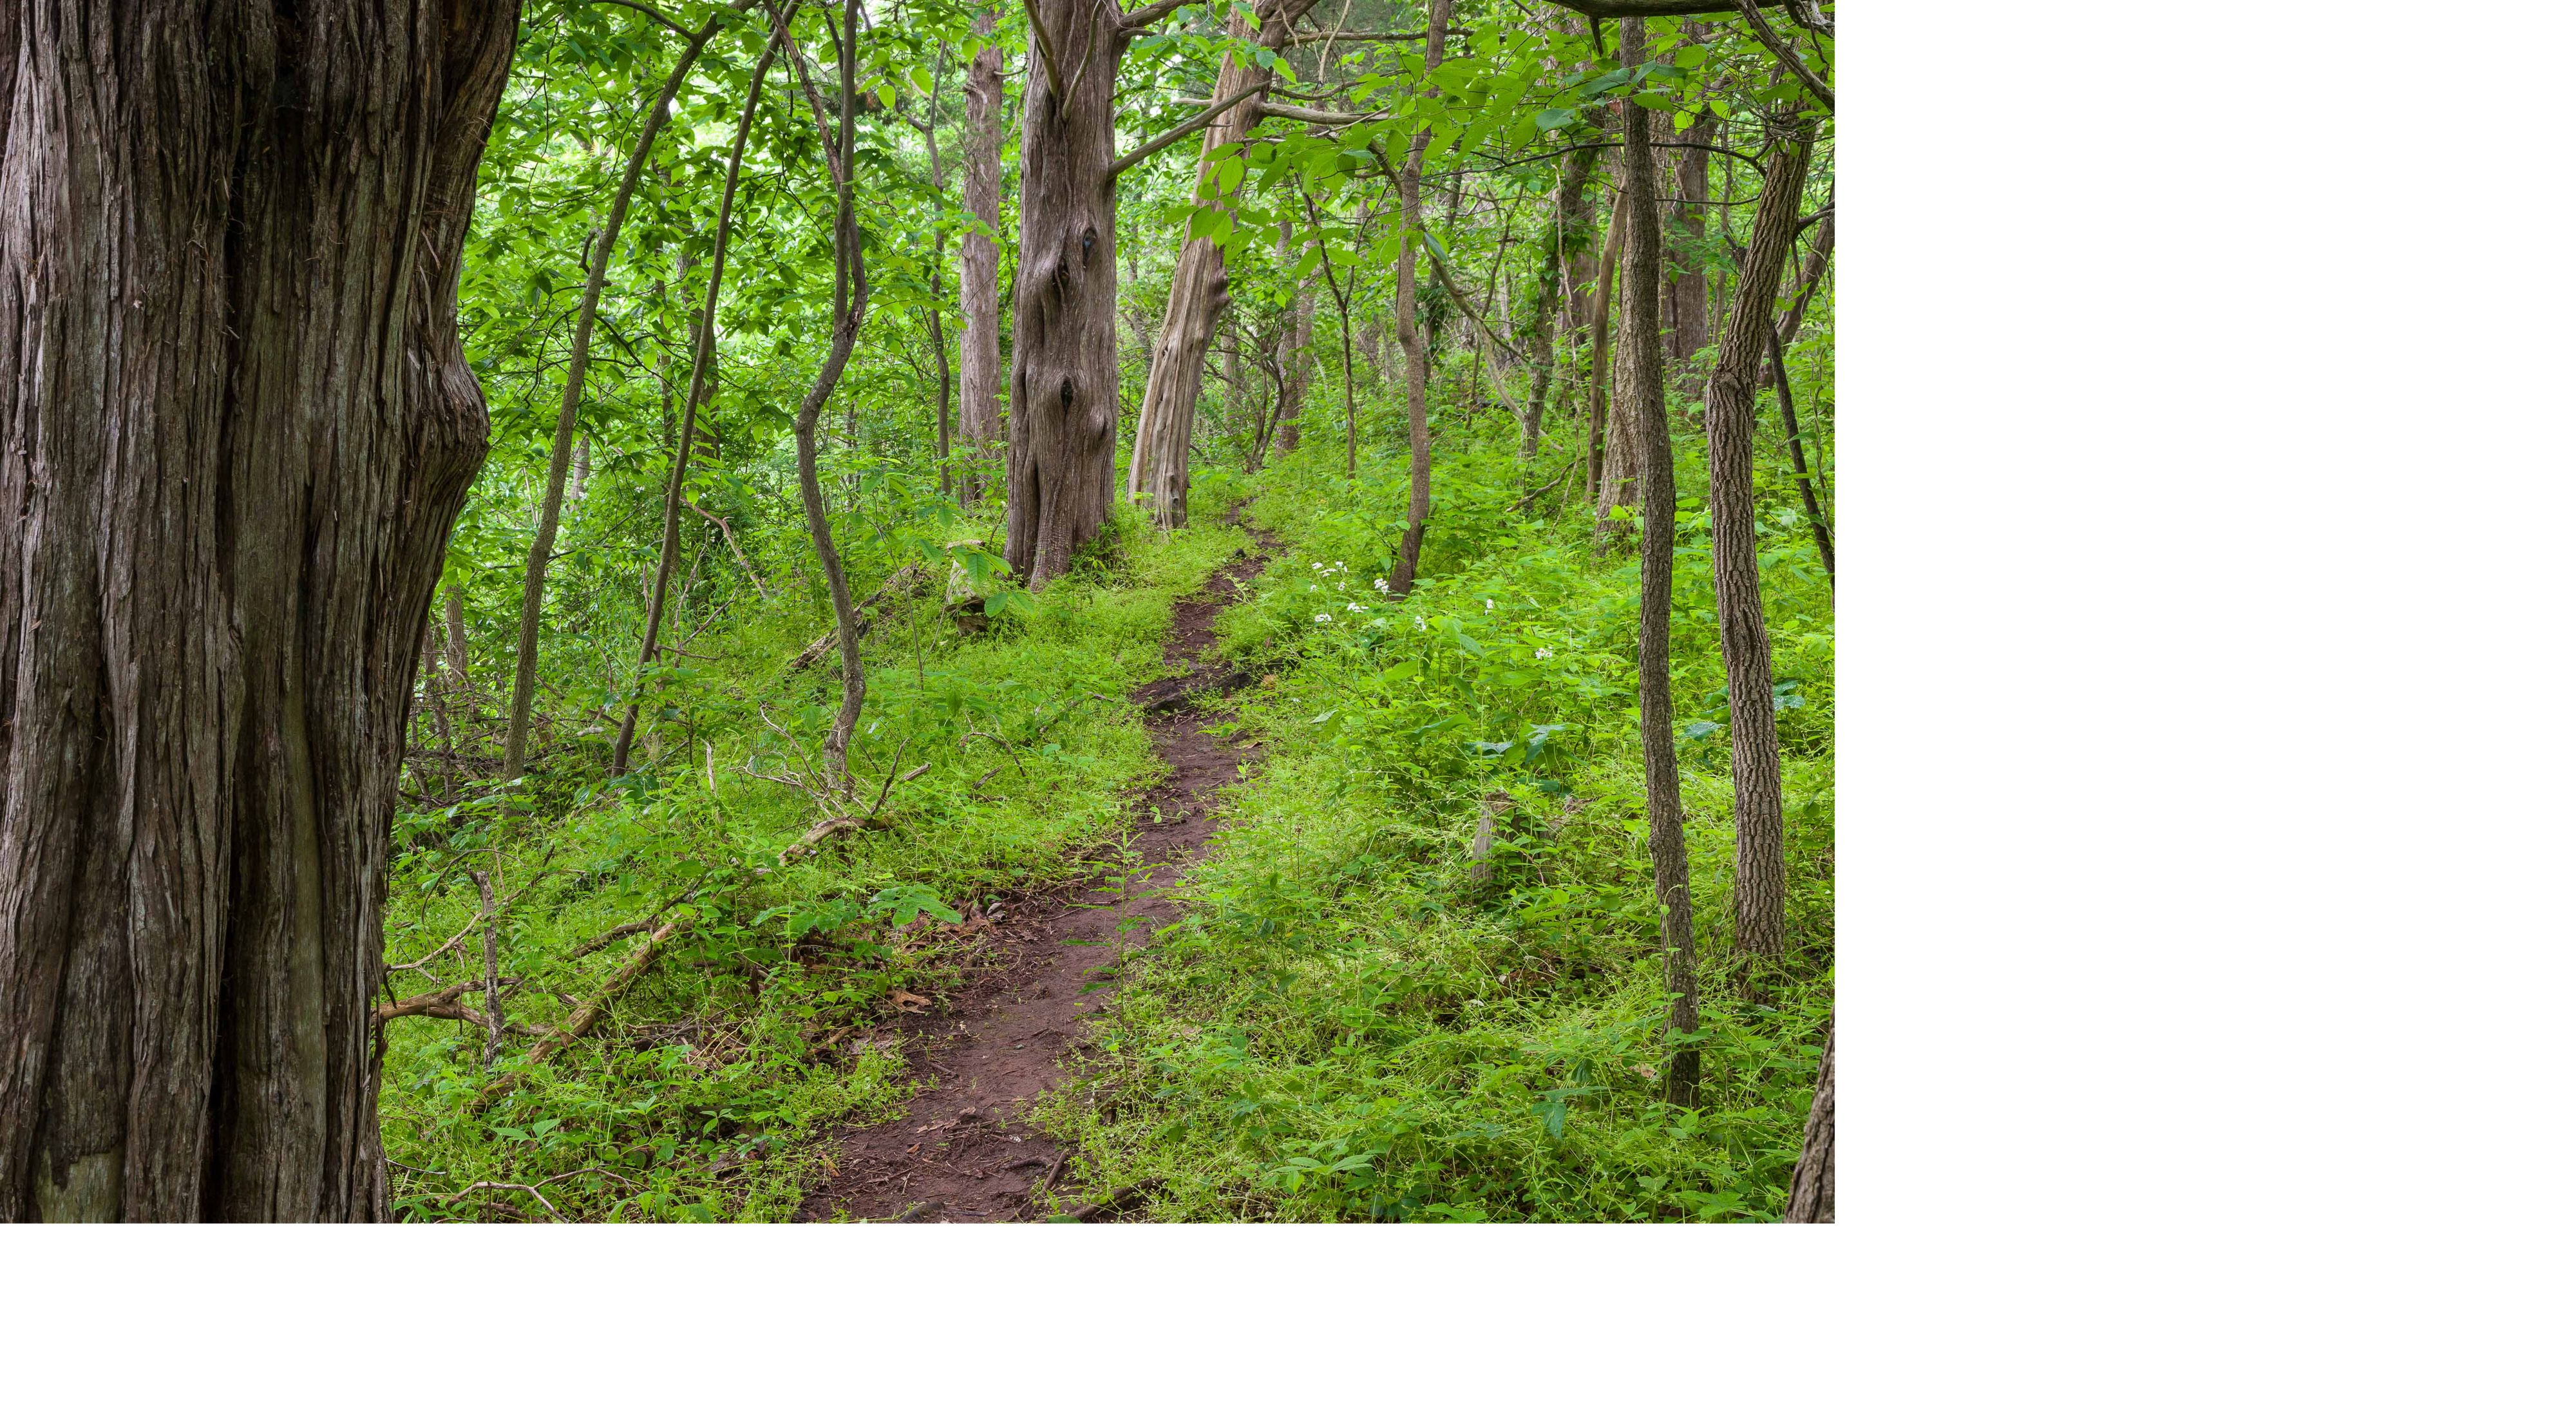 Three well marked trails take the visitor through a variety of habitat types on this West Virginia preserve.